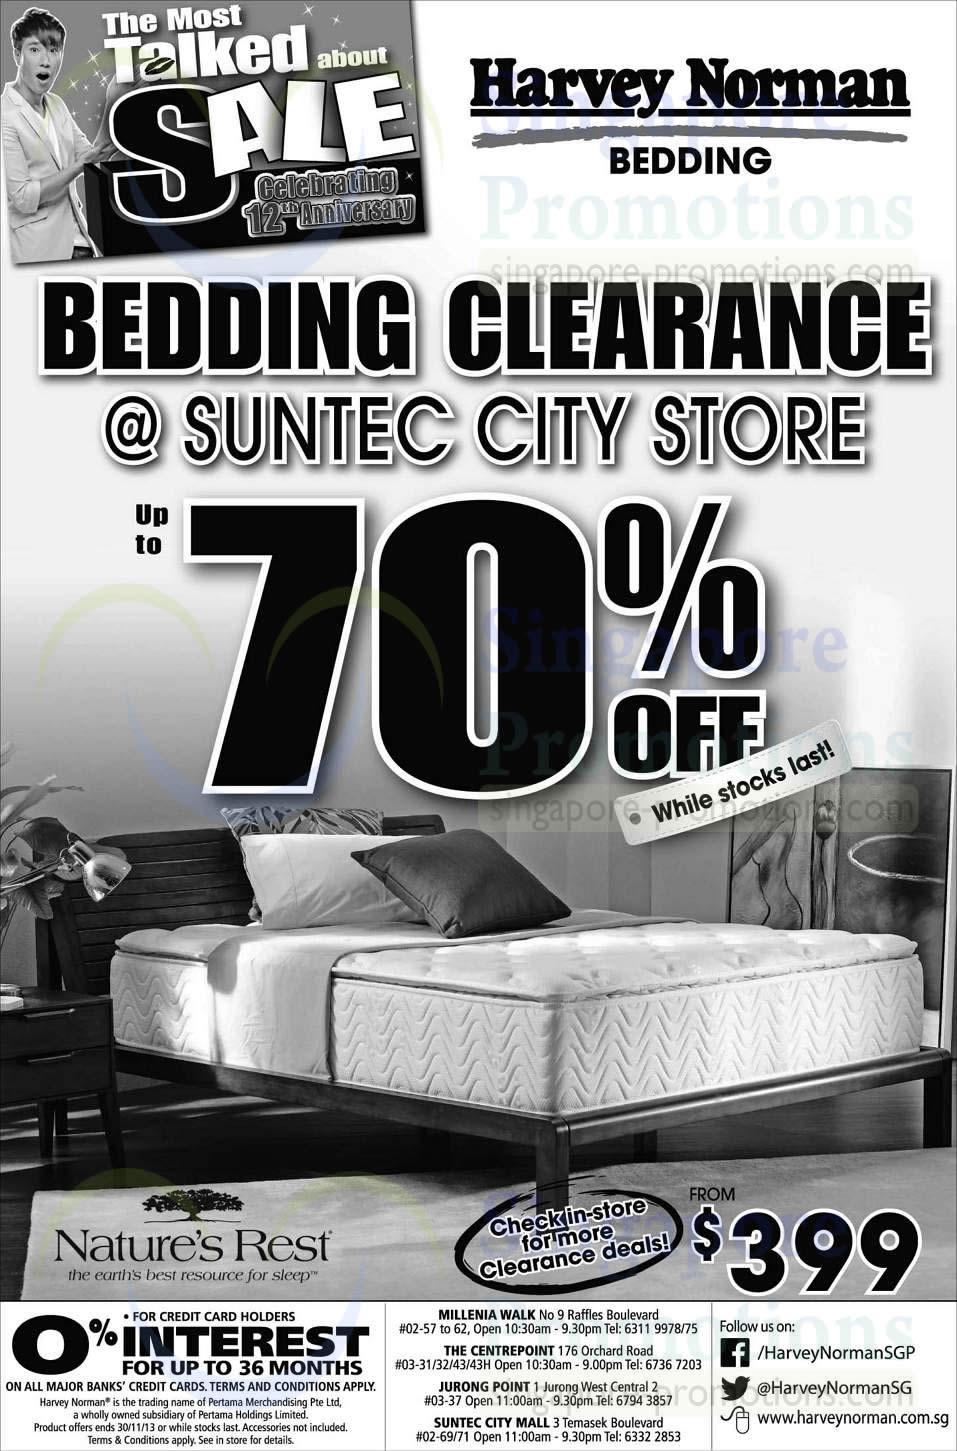 Bedding Clearance at 70 Percent Off